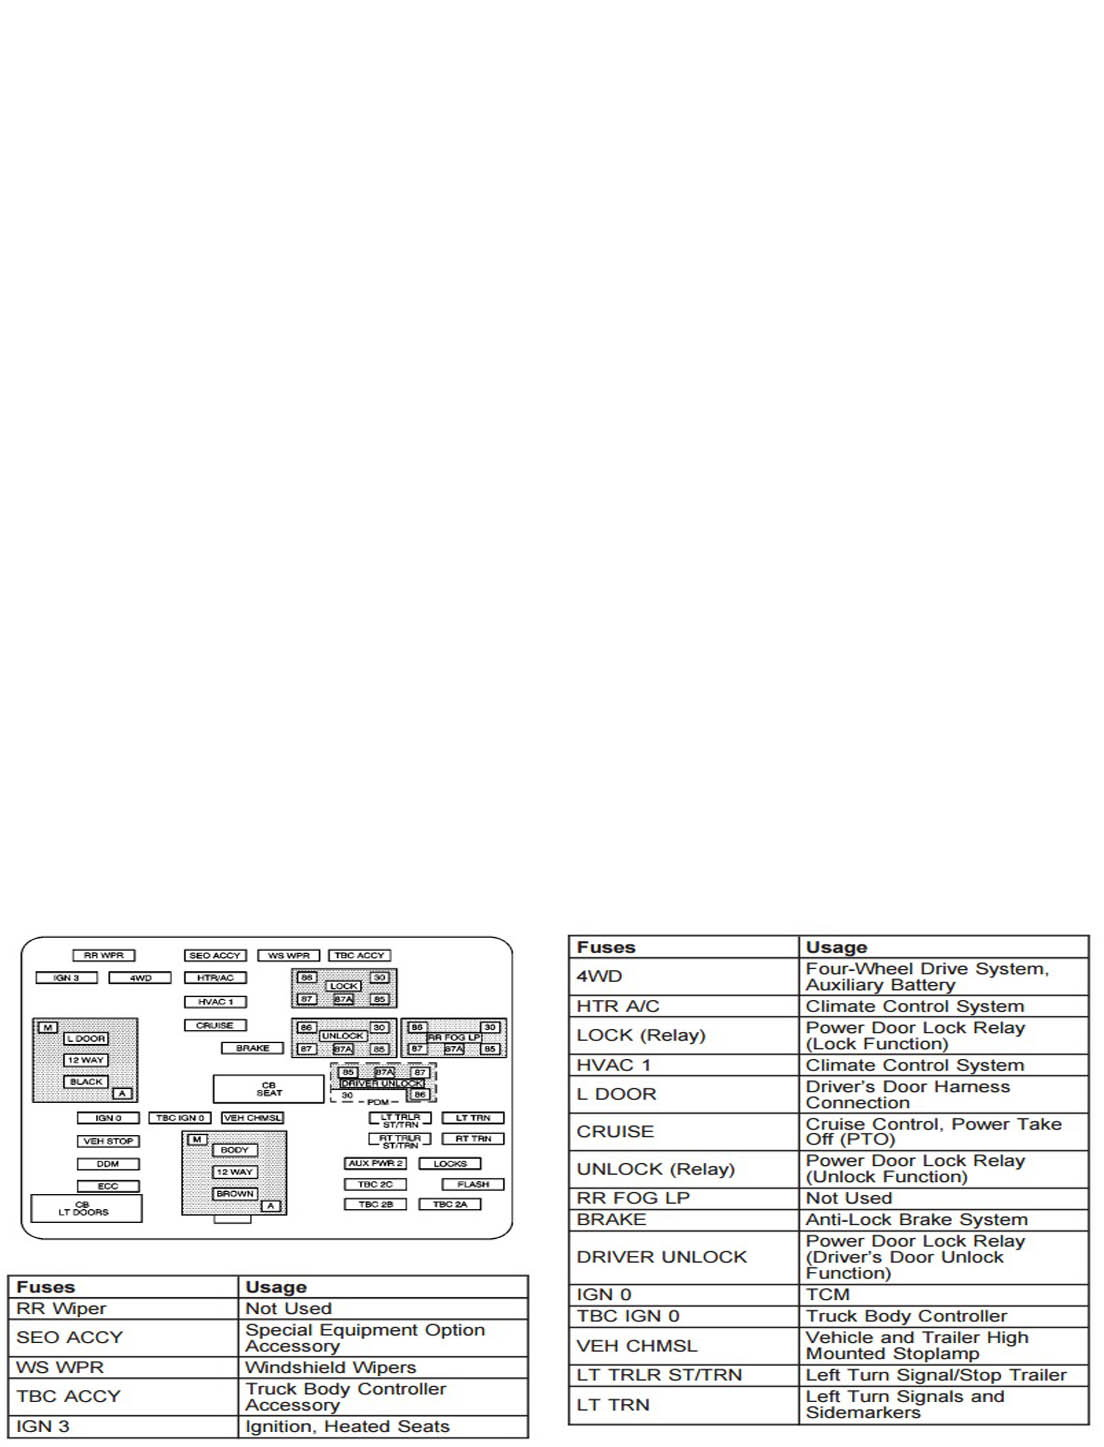 hight resolution of chevrolet silverado gmt800 1999 2006 fuse box diagram chevroletforum rh chevroletforum com 2000 chevy astro fuse